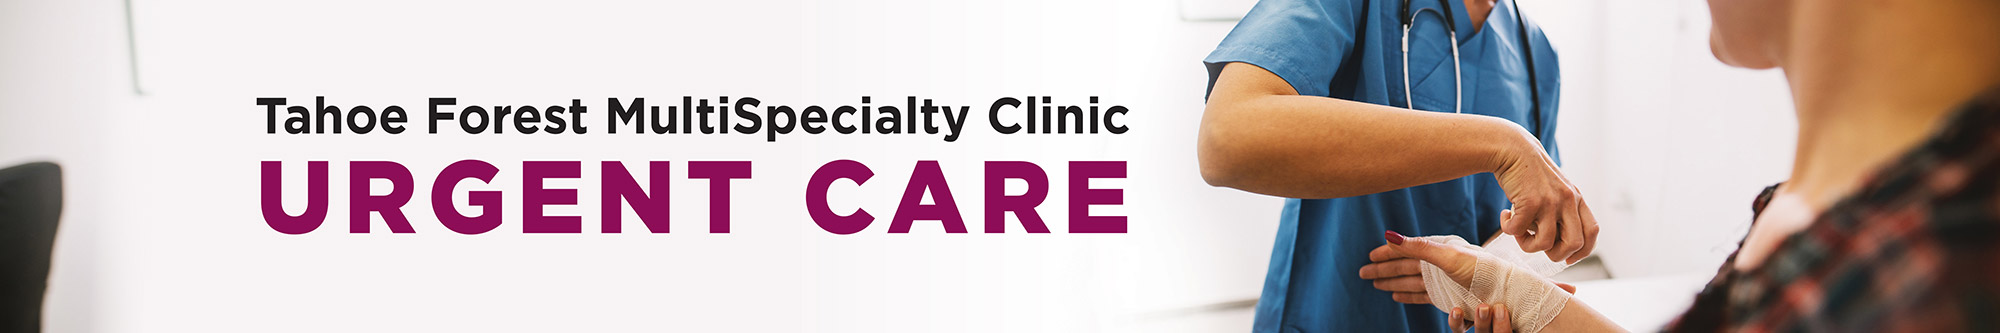 Tahoe Forest MultiSpecialty Clinic Urgent Care